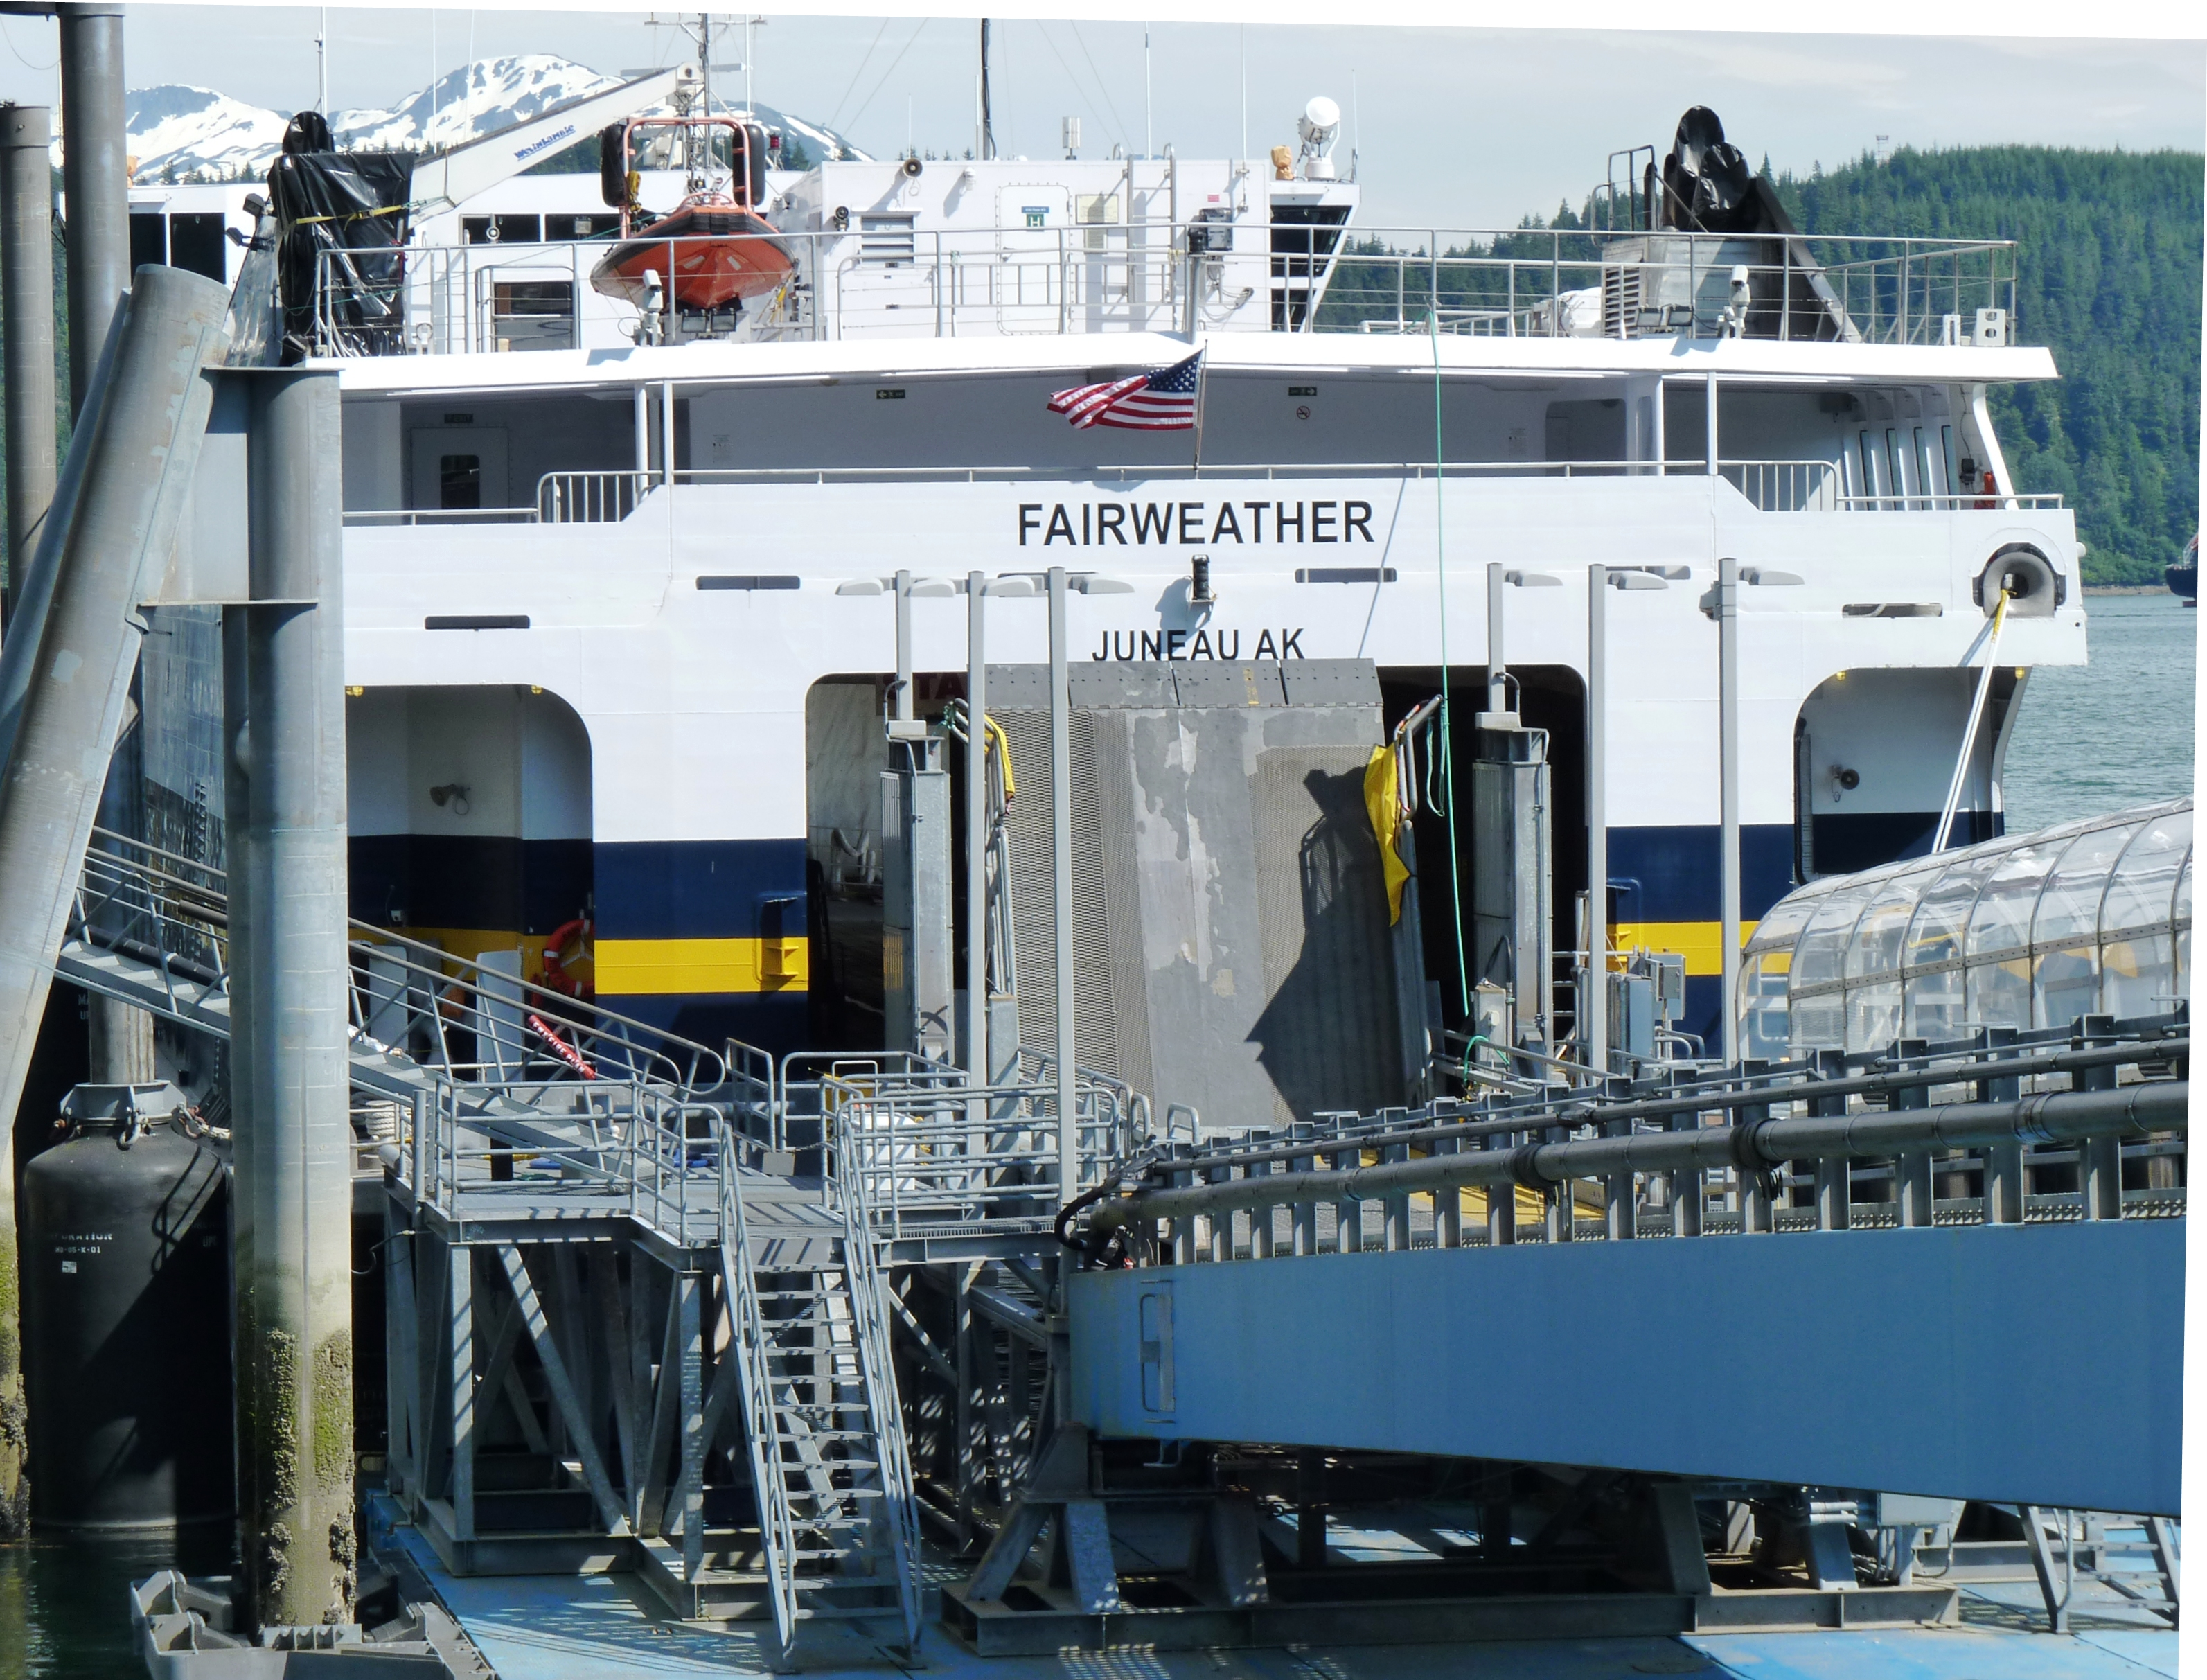 The fast ferry Fairweather docks at Juneau's Auke Bay Ferry Terminal in 2013. It's one of several ships with an uncertain future as the marine highway system's budget shrinks. (Photo by Ed Schoenfeld, CoastAlaska News - Juneau)